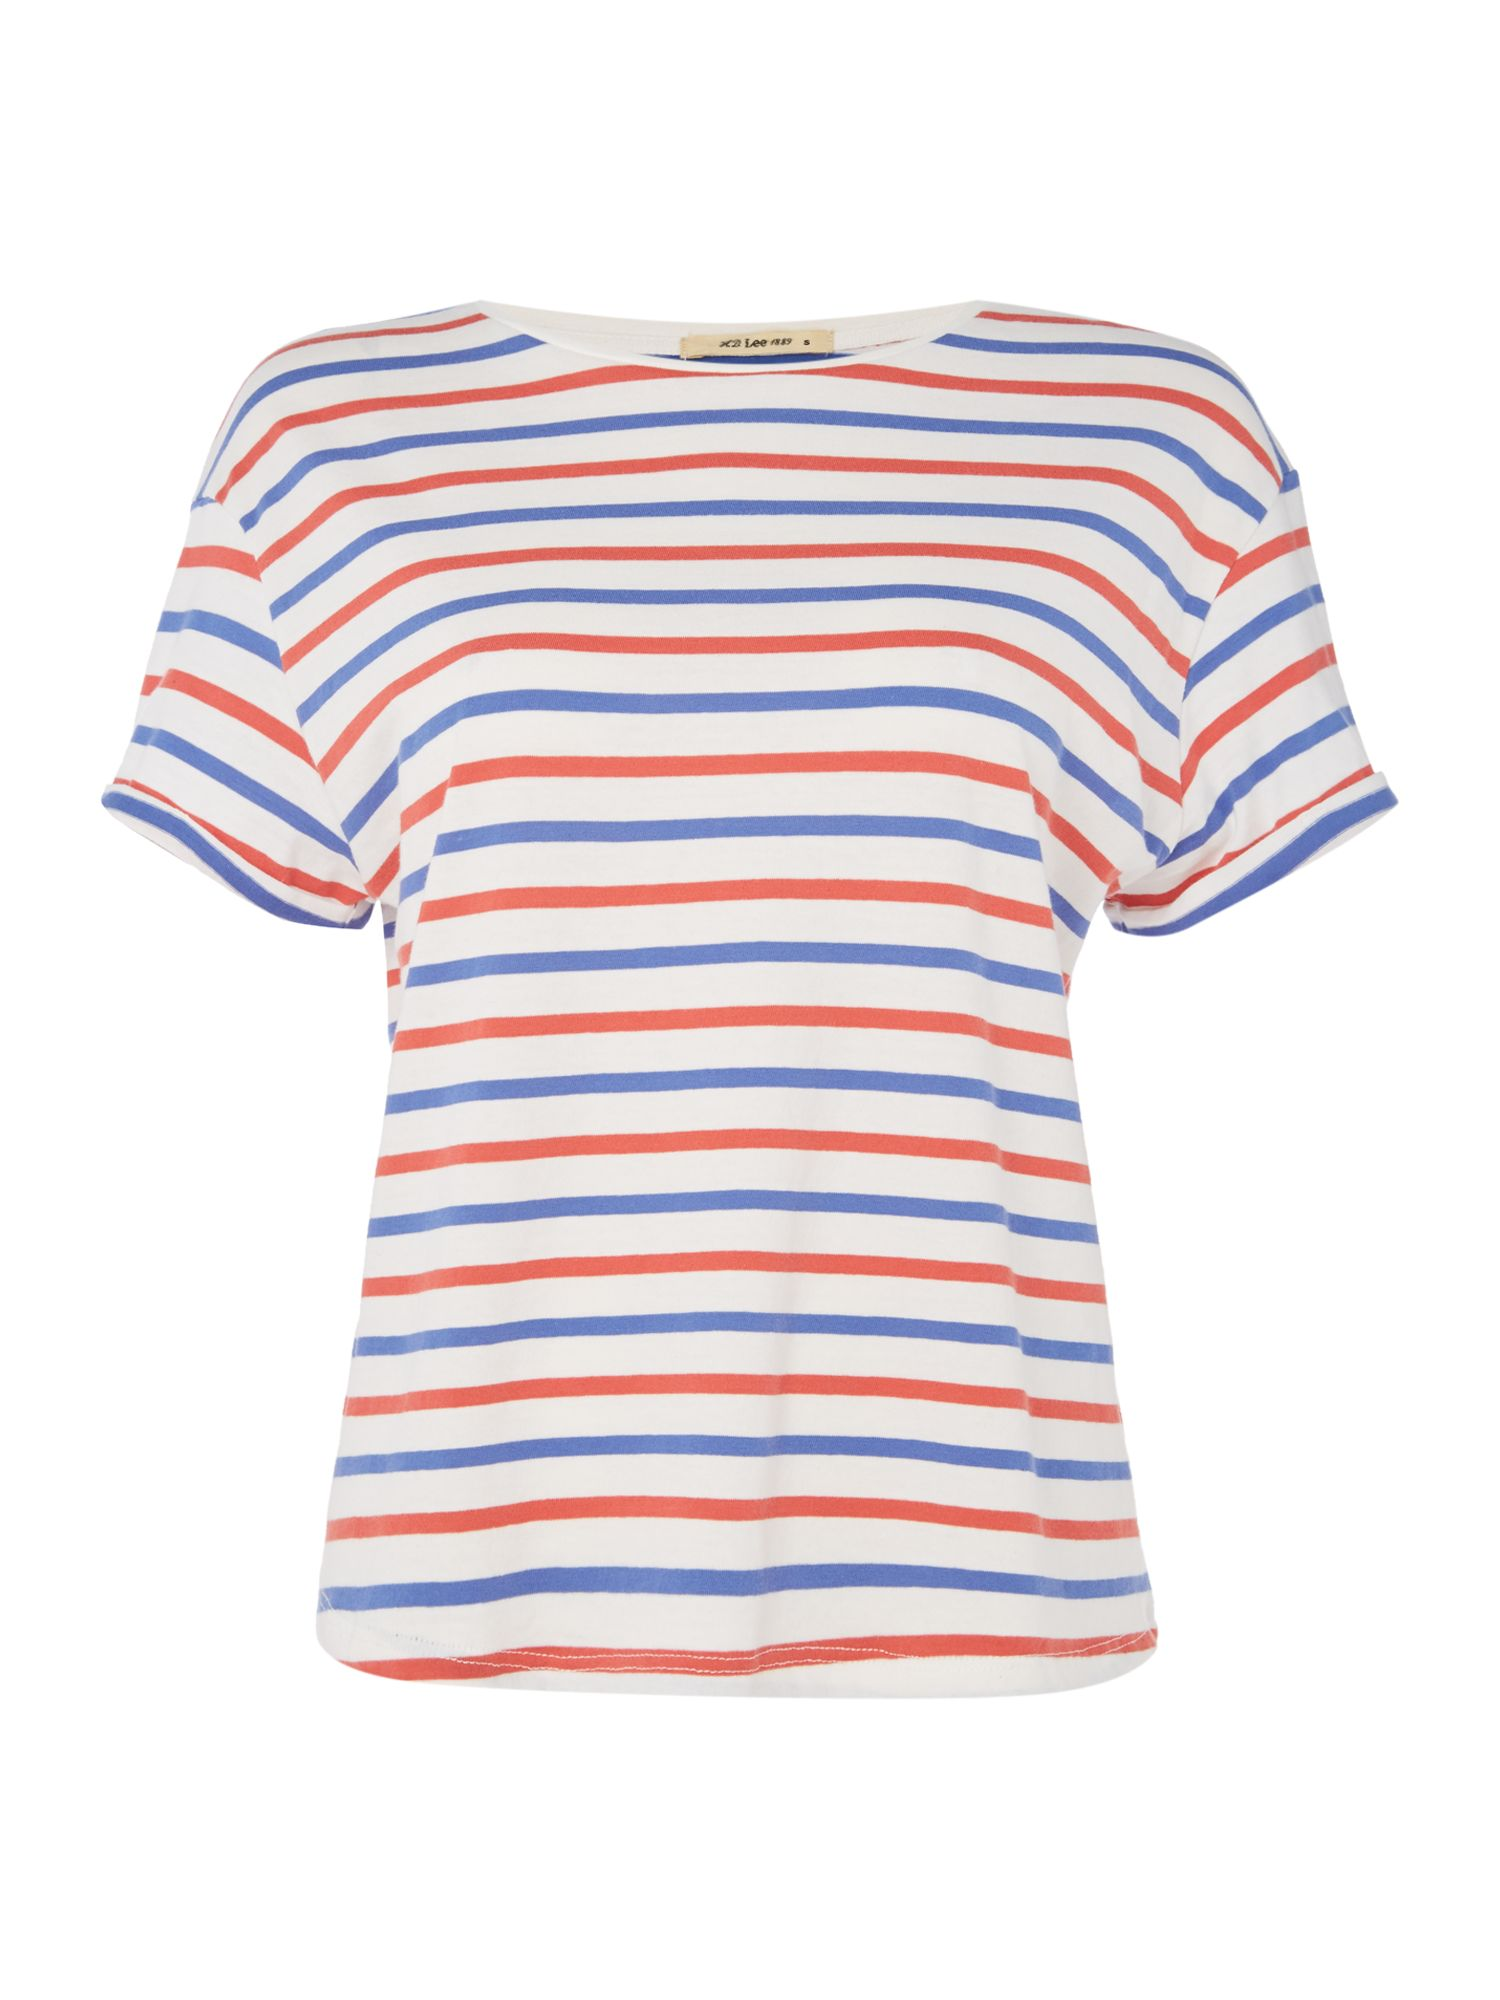 Relaxed Stripe Tee Top In Workwear Blue, Blue